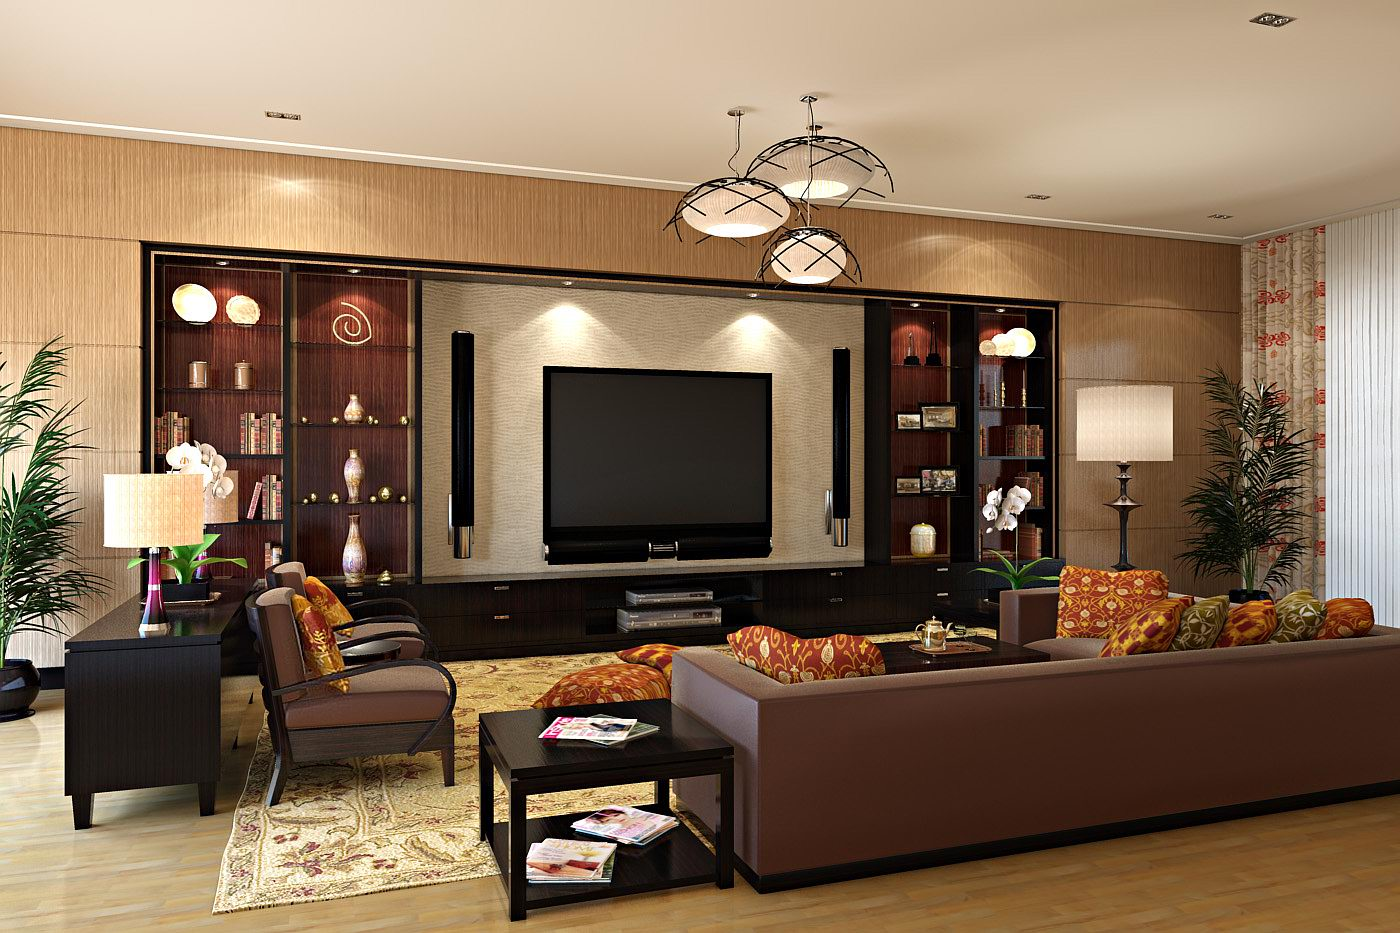 Modern Home Theatre Room Style Designs For Living Room - RooHome ...